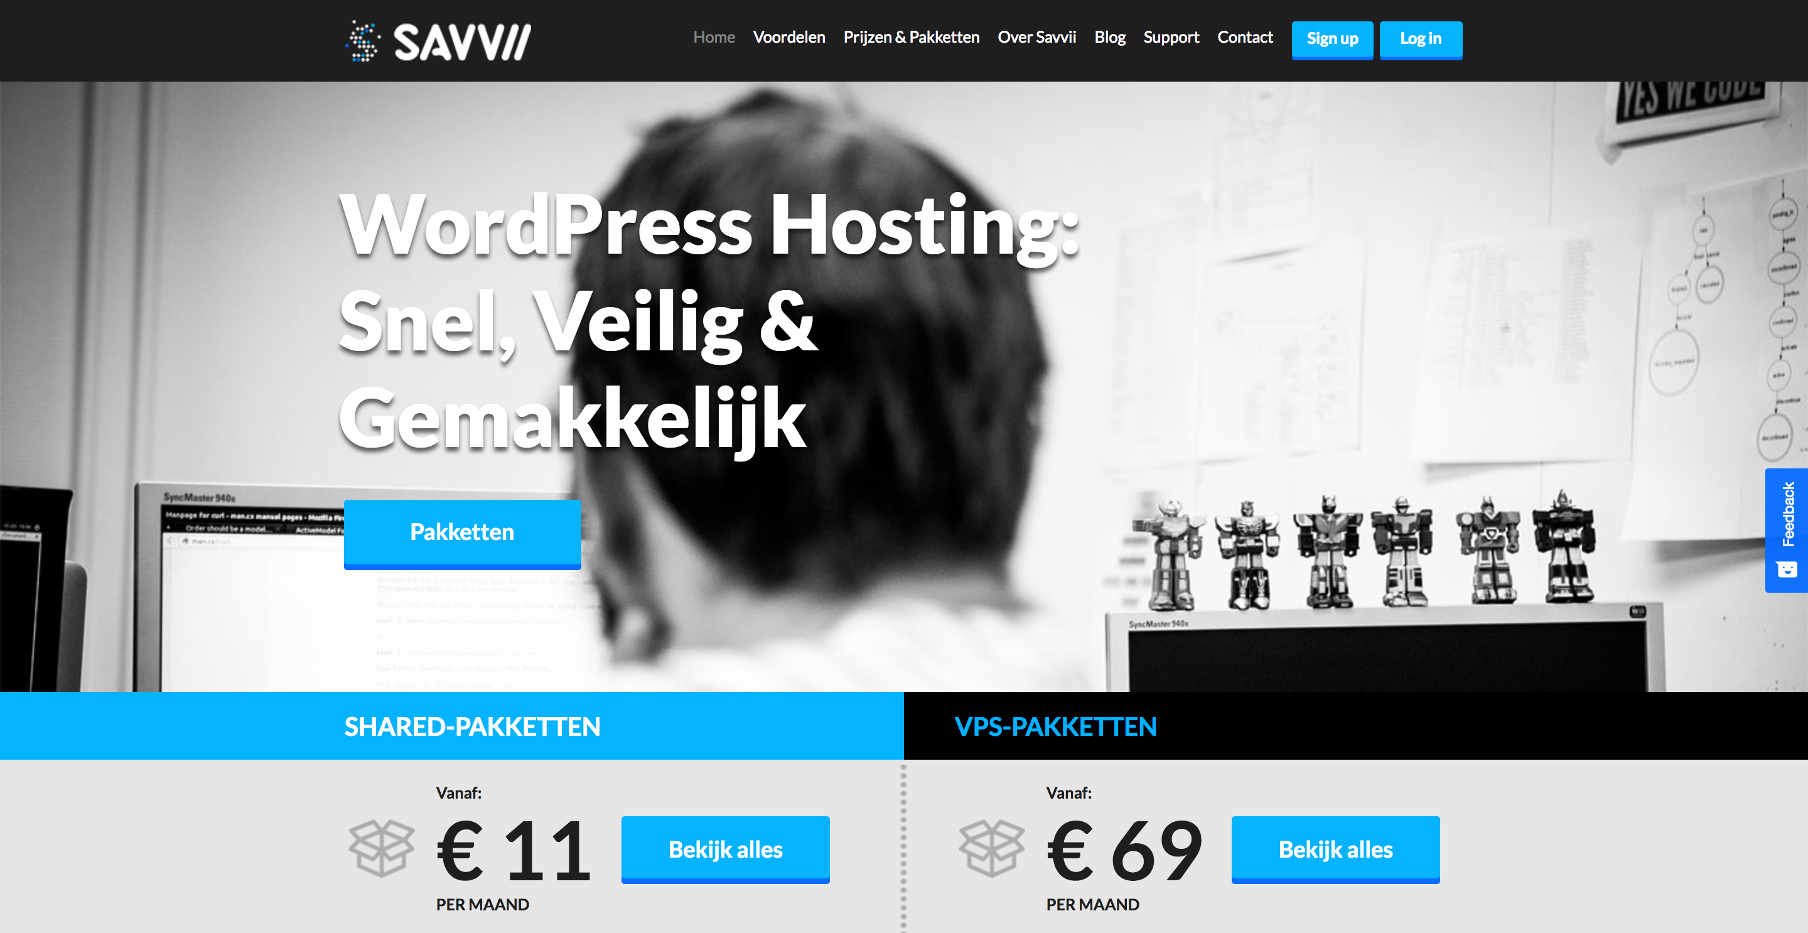 Savvii Managed WordPress Hosting homepage